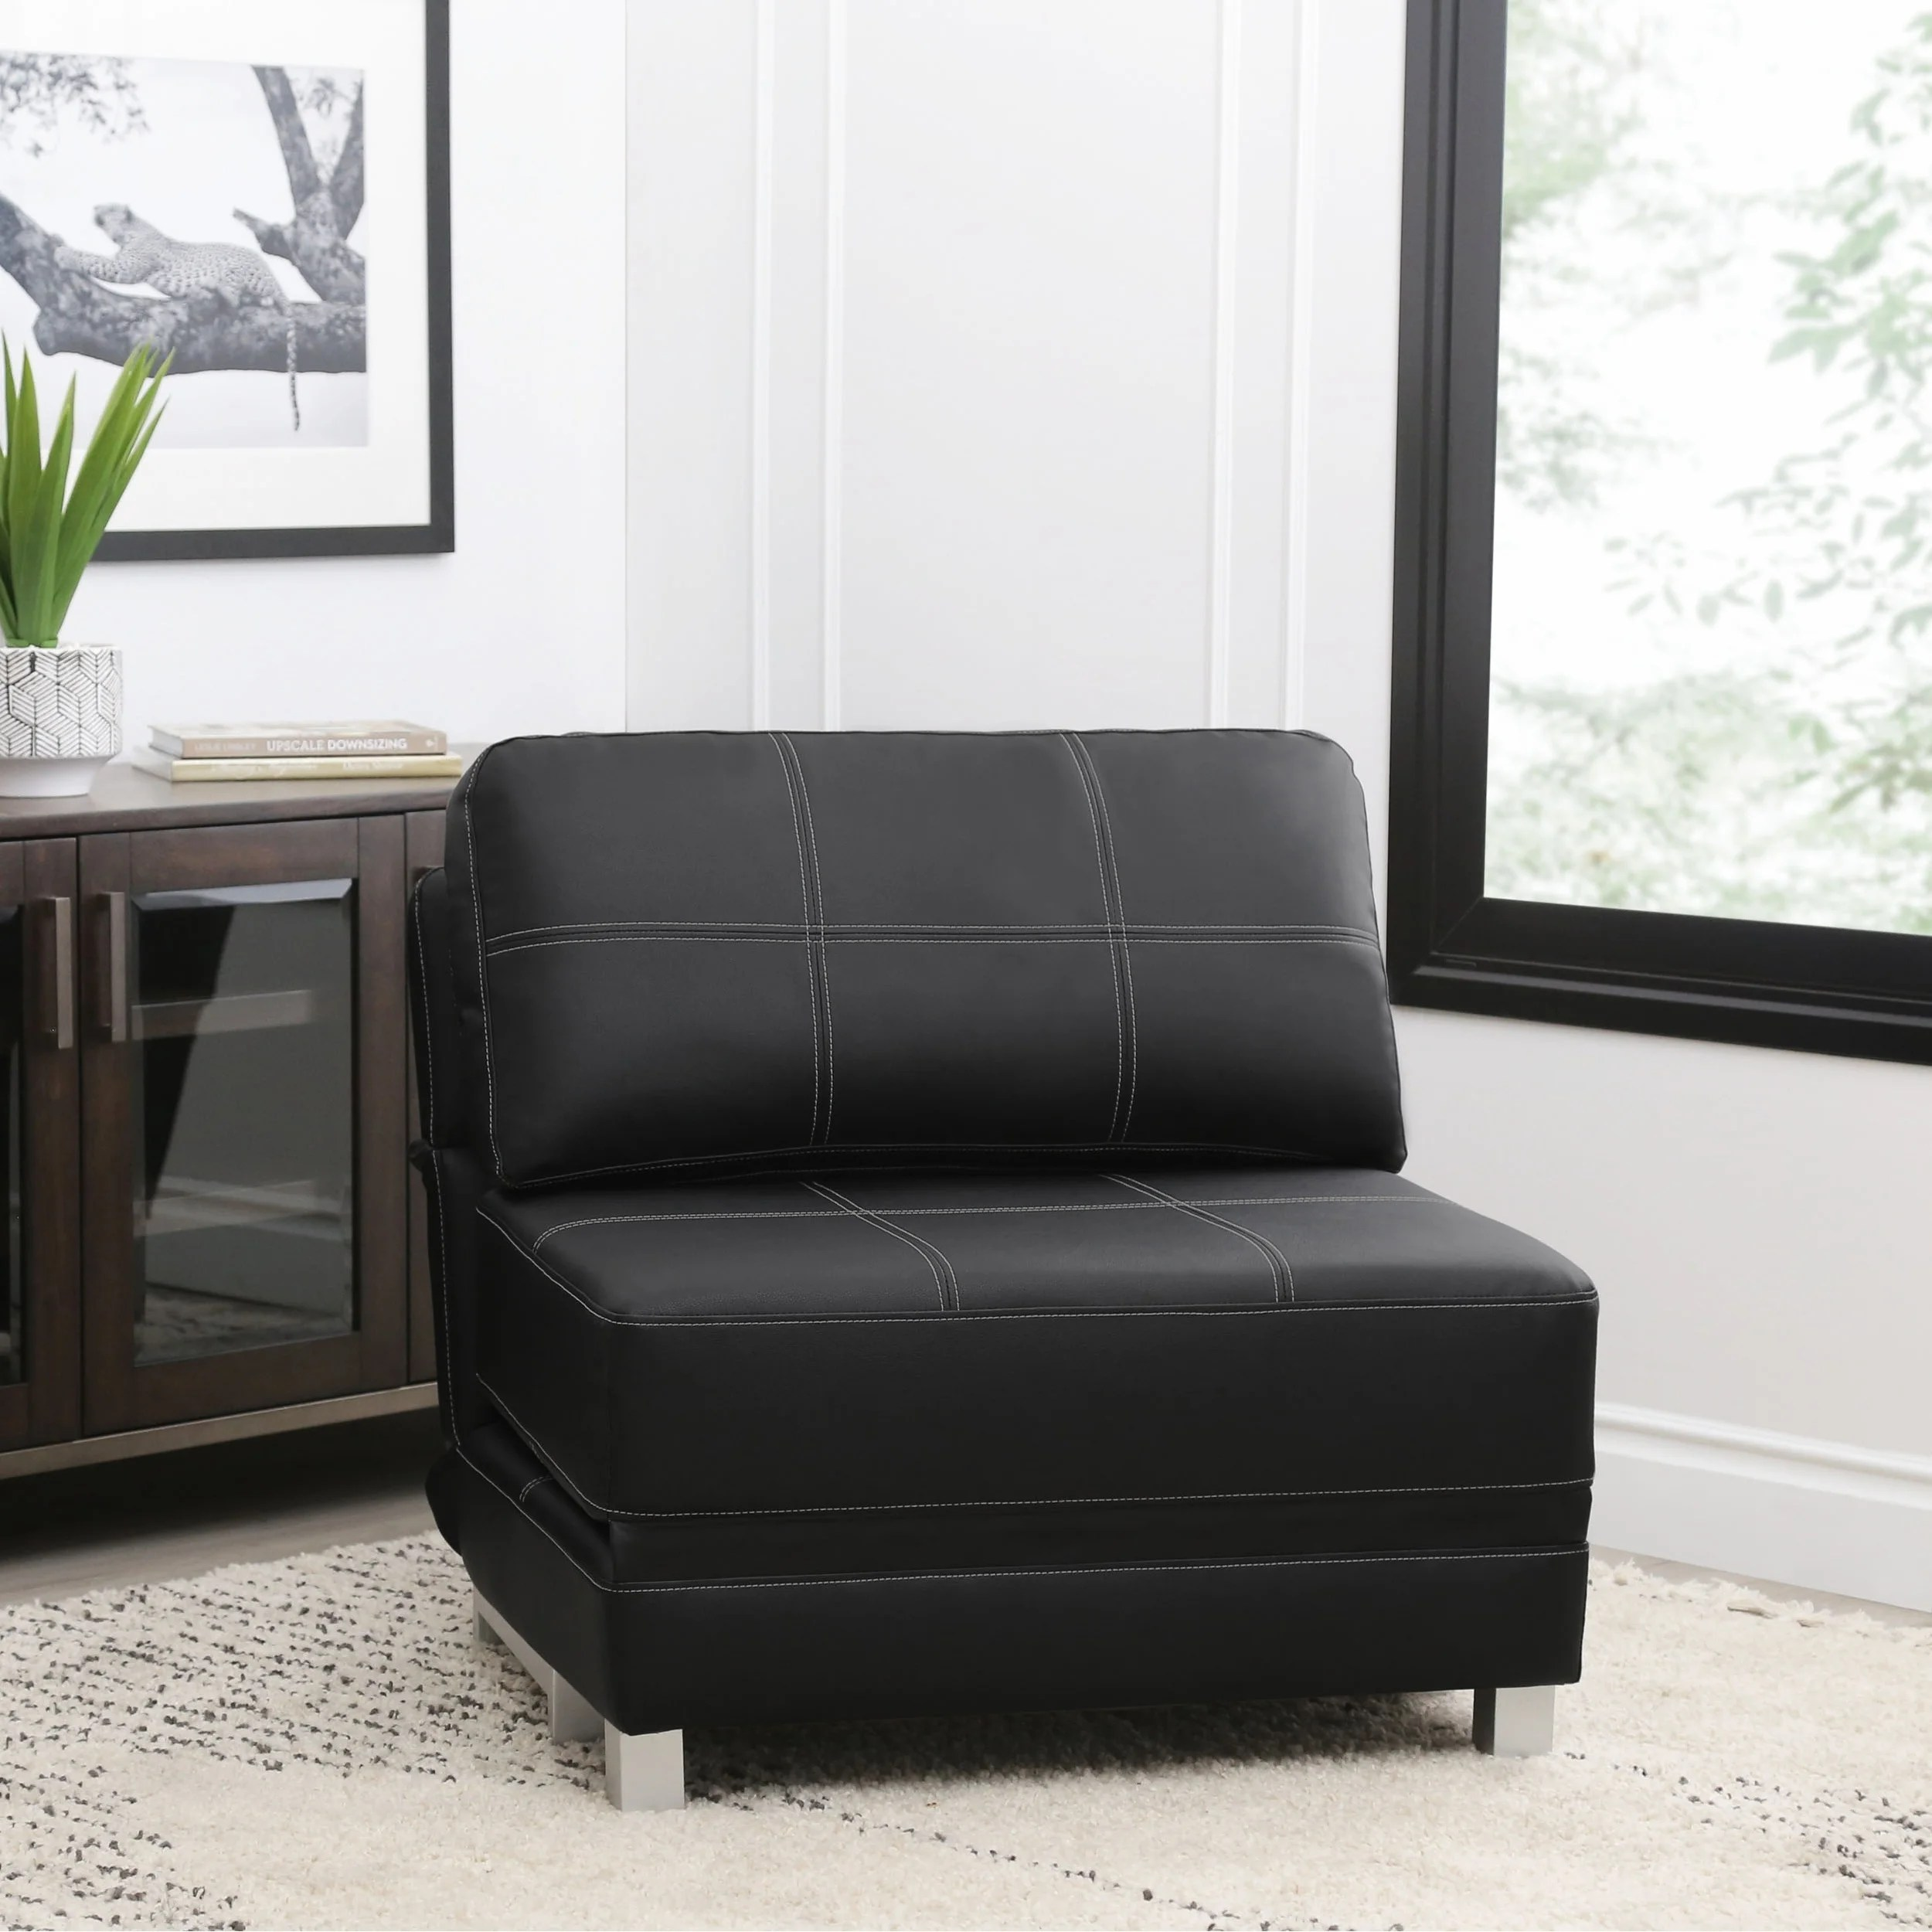 Sleeper Chairs Buy Sleepers Online At Overstock Our Best Living Room Furniture